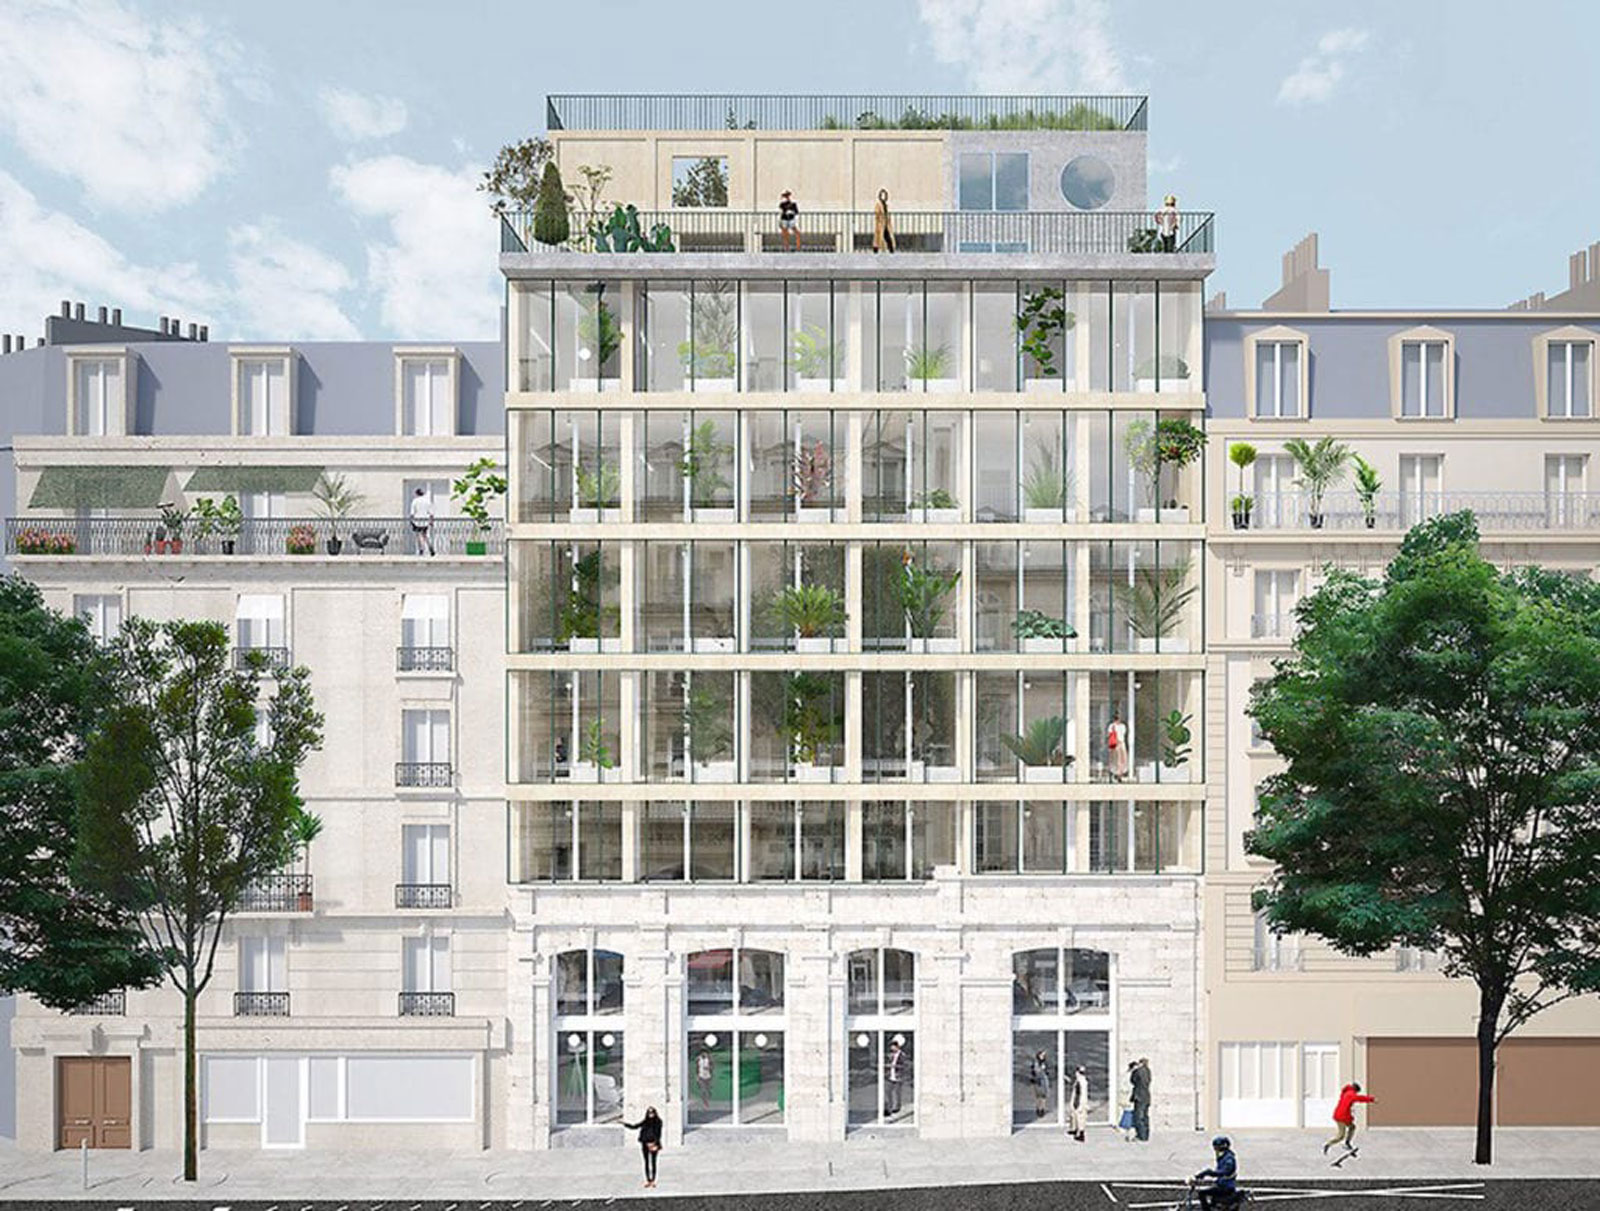 projet urbain paris reinventer paris laureat